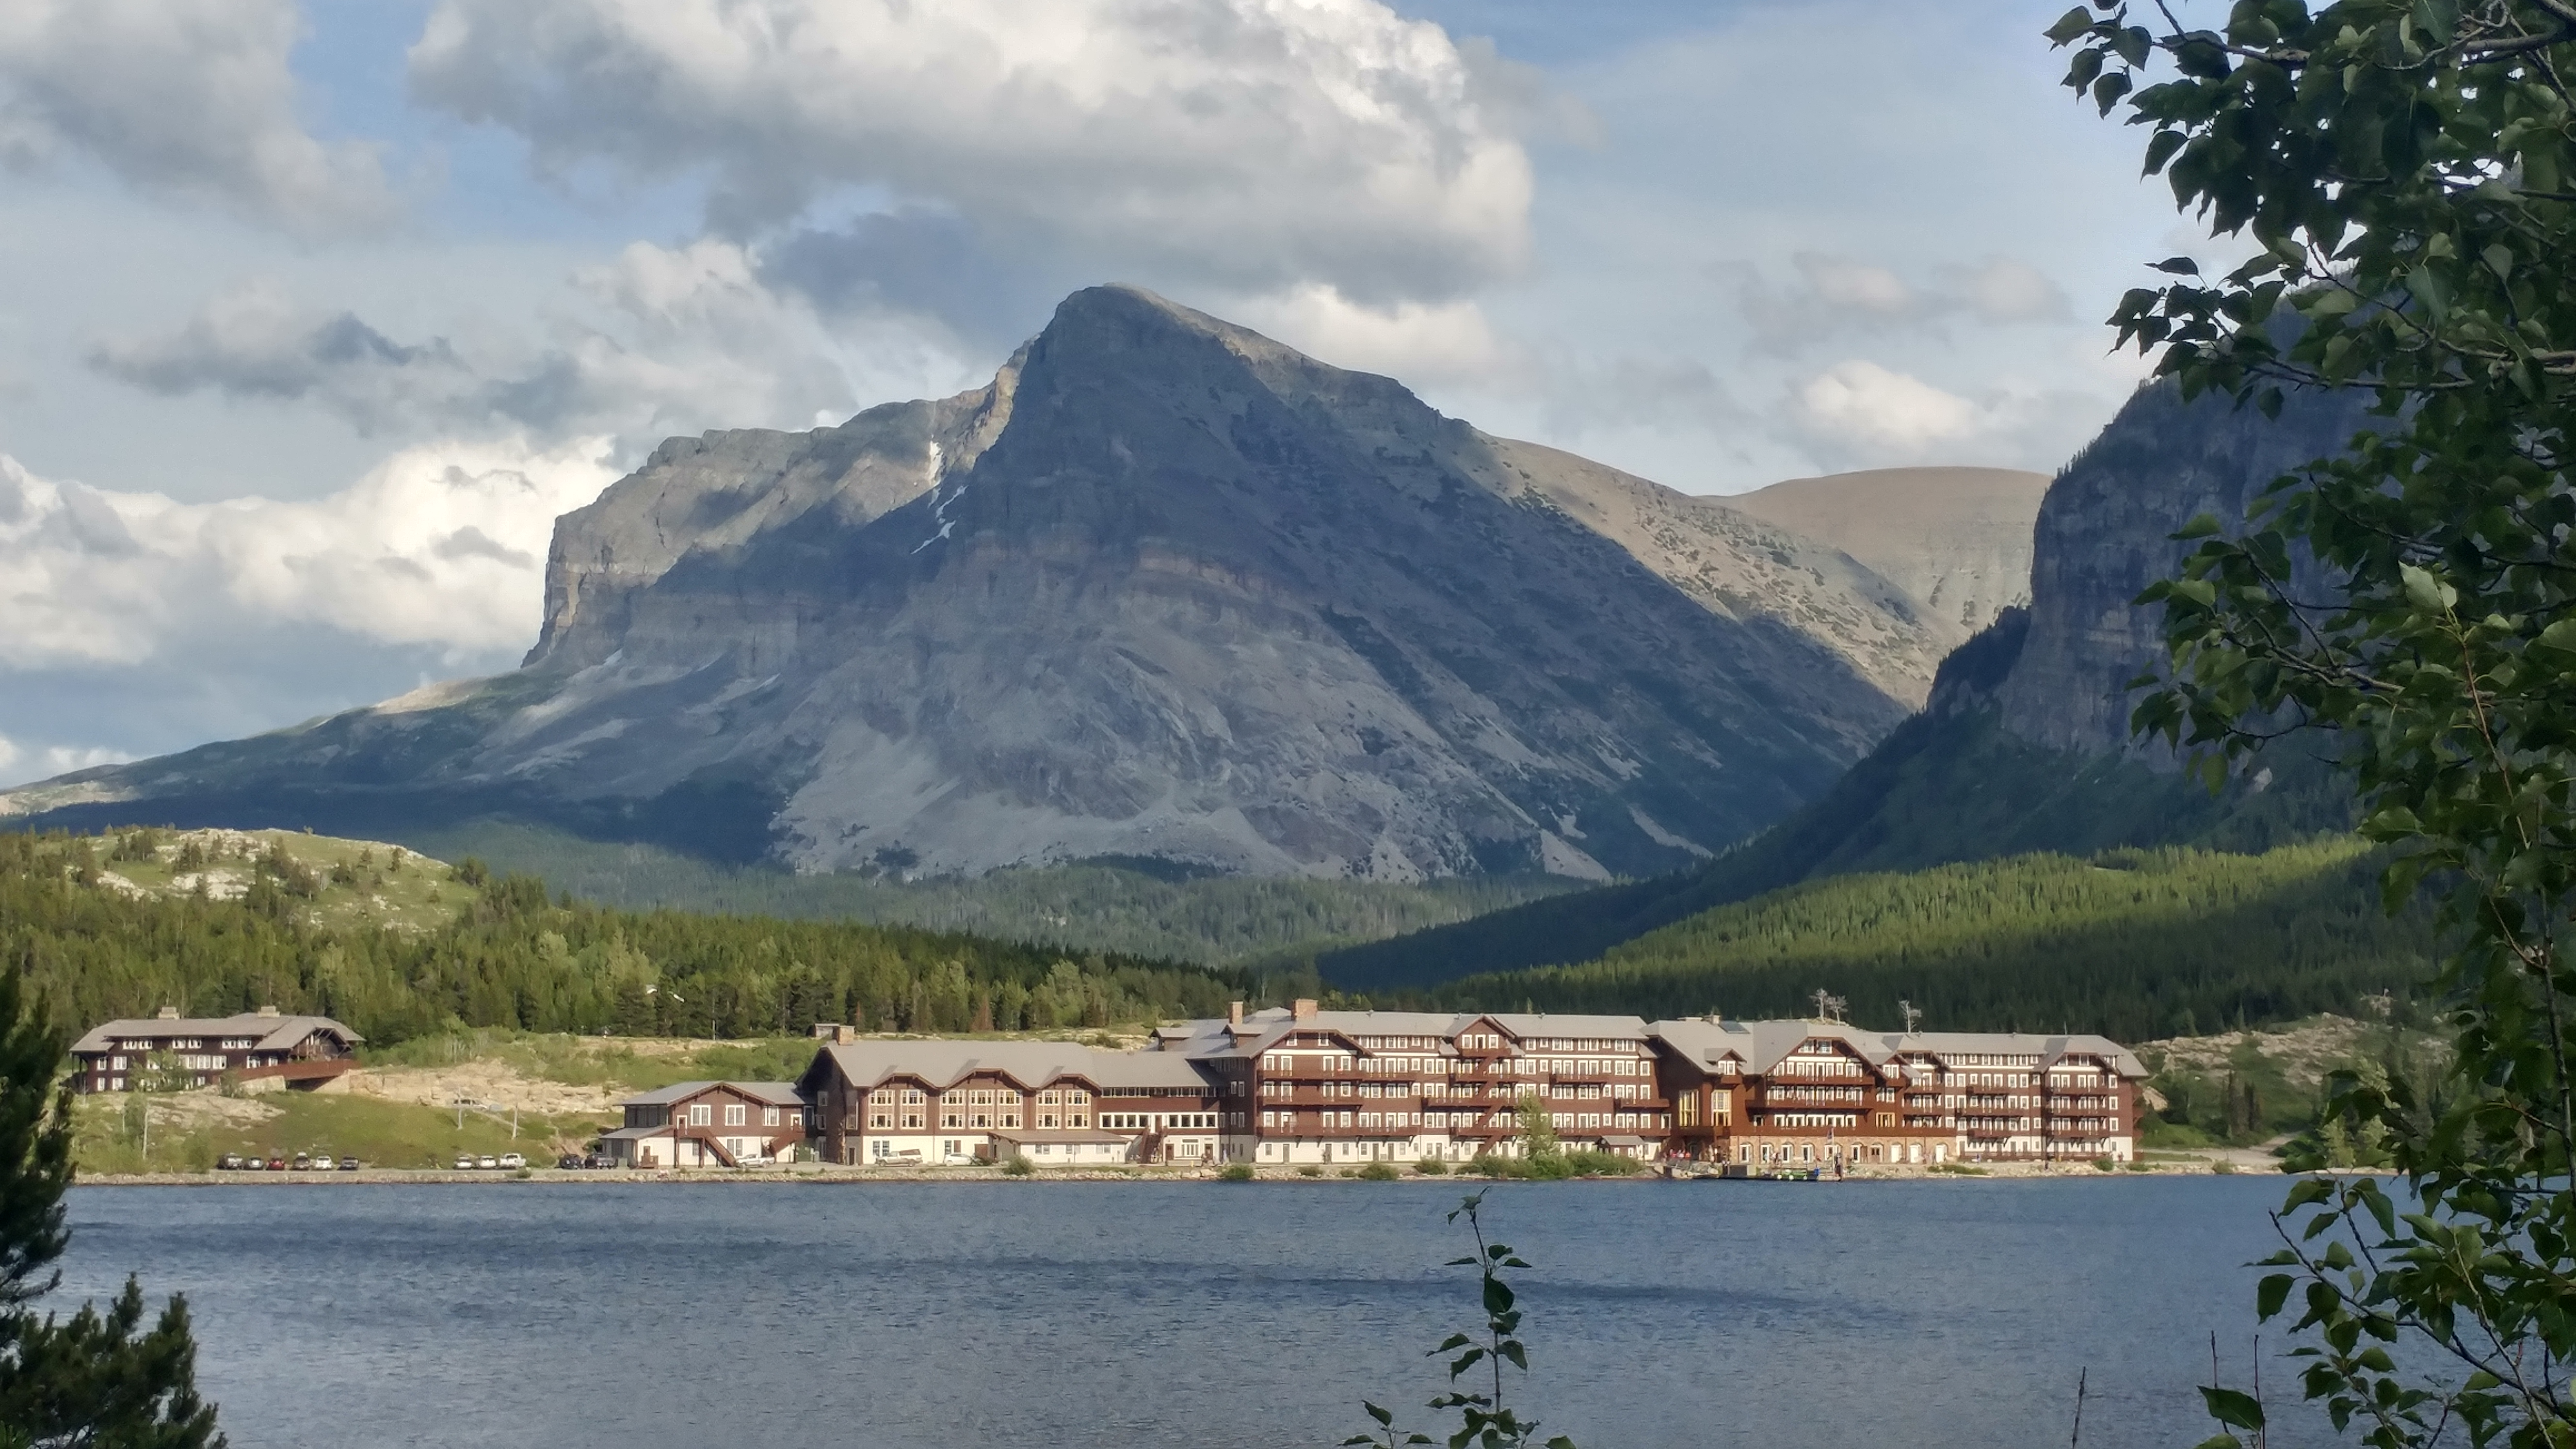 Need to Disconnect? The Many Glacier Hotel and the Rest of the Story …